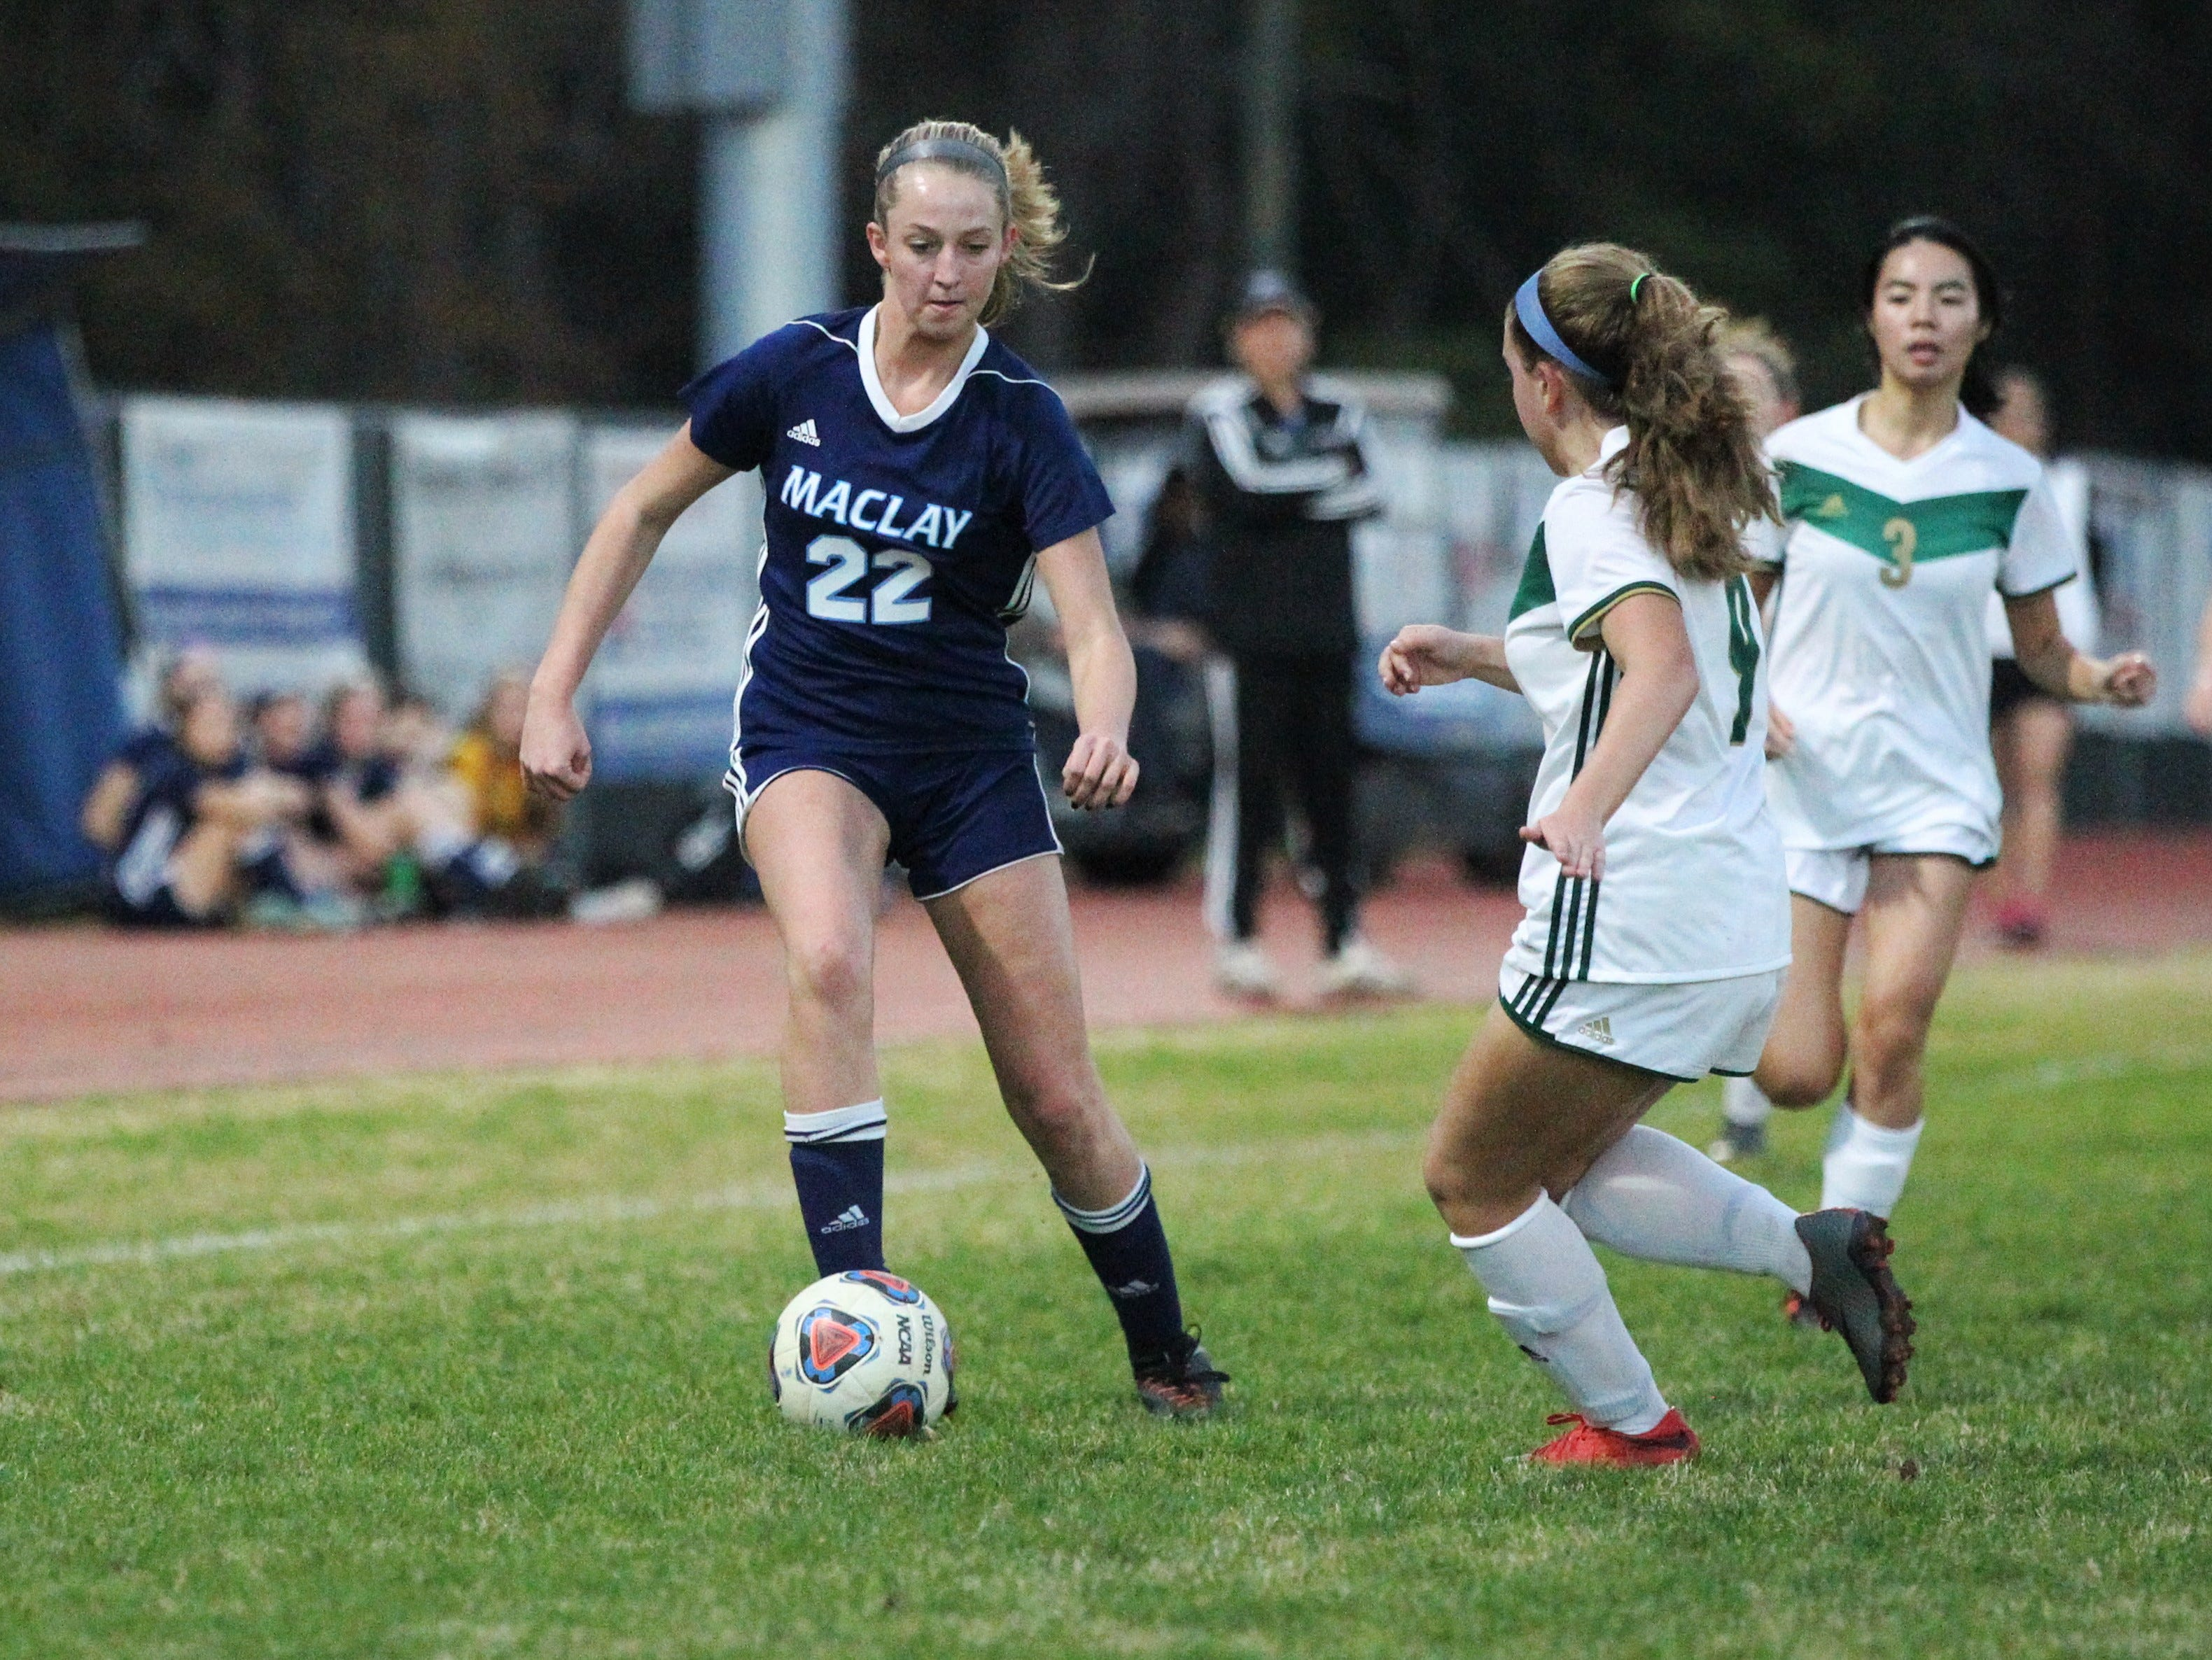 Maclay's Edy Rash tries to take on a defender one-on-one as Maclay's girls soccer team beat St. Joseph Academy 4-0 in a Region 1-1A quarterfinal on Jan. 5, 2019.